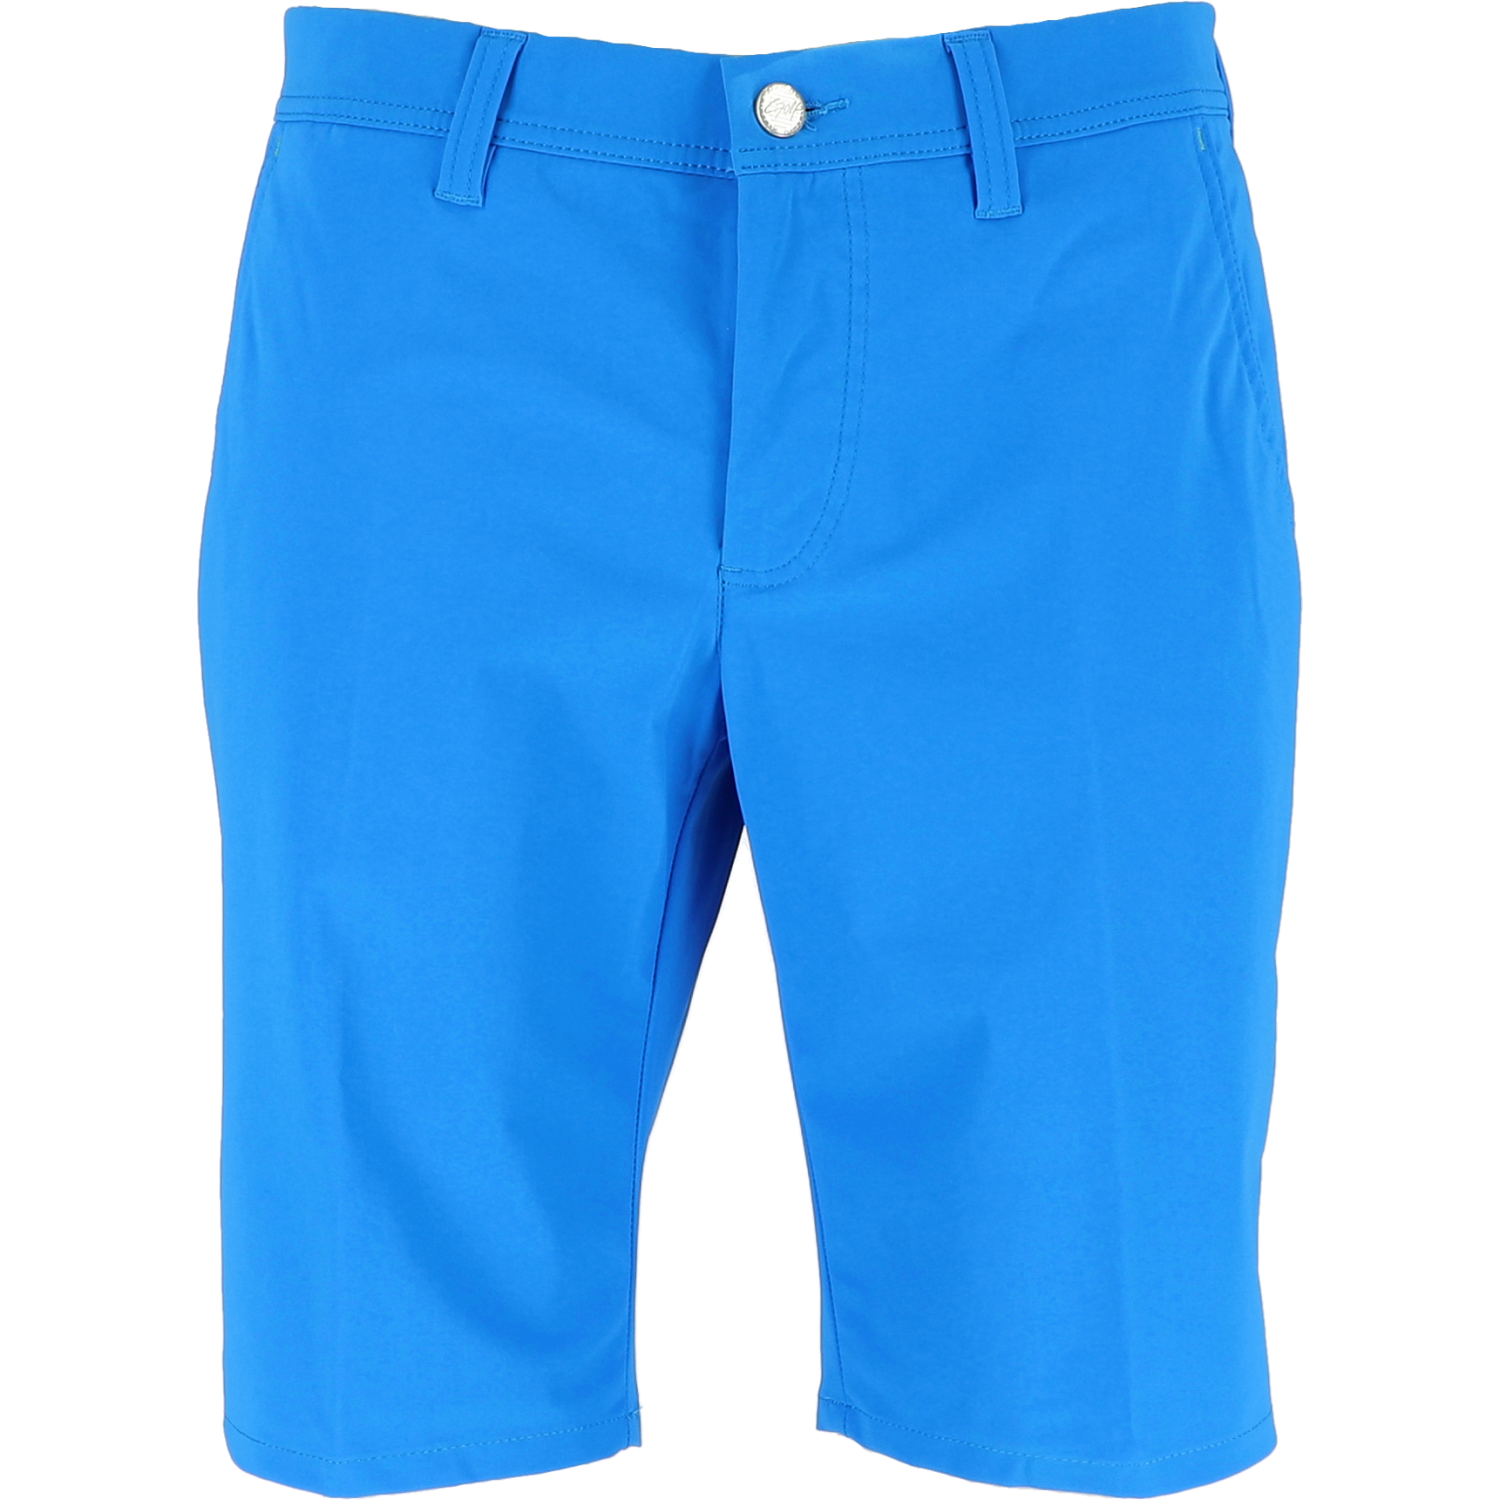 Earnie Shorts - WR Revolutional, turquoise